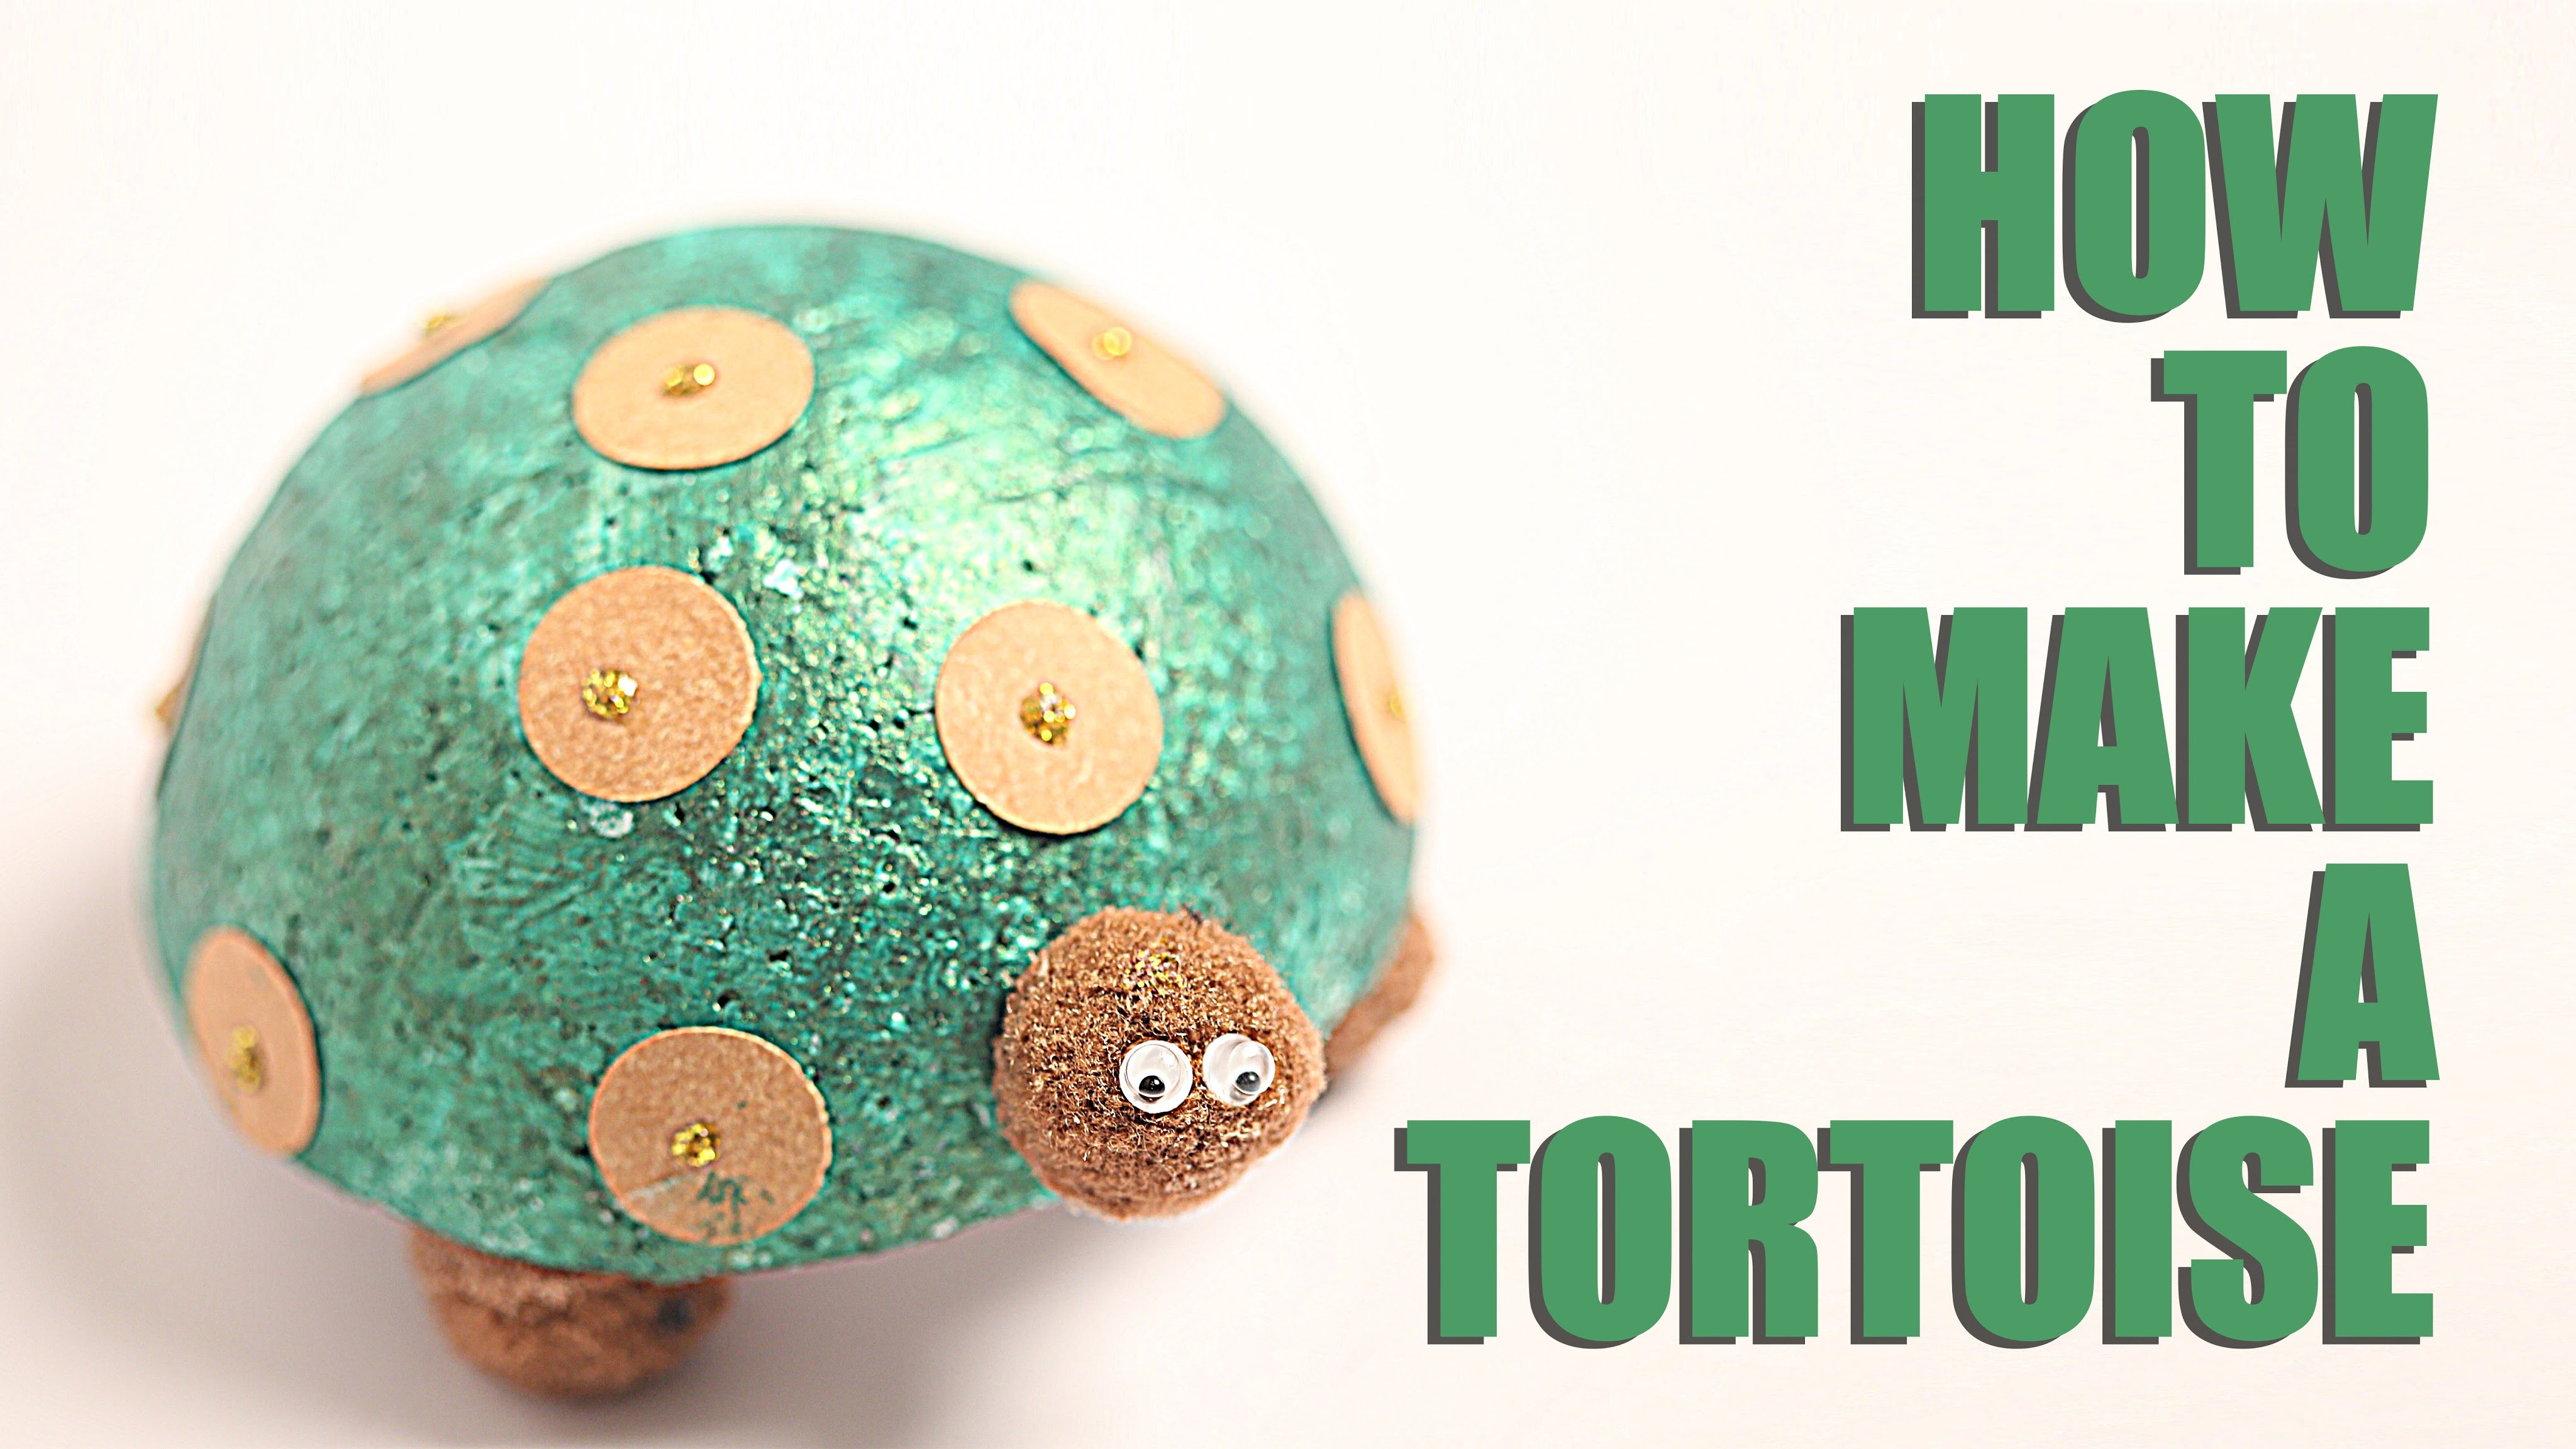 How To Make Tortoise | DIY Tortoise | Kids Art and Craft | Learn Art and Craft